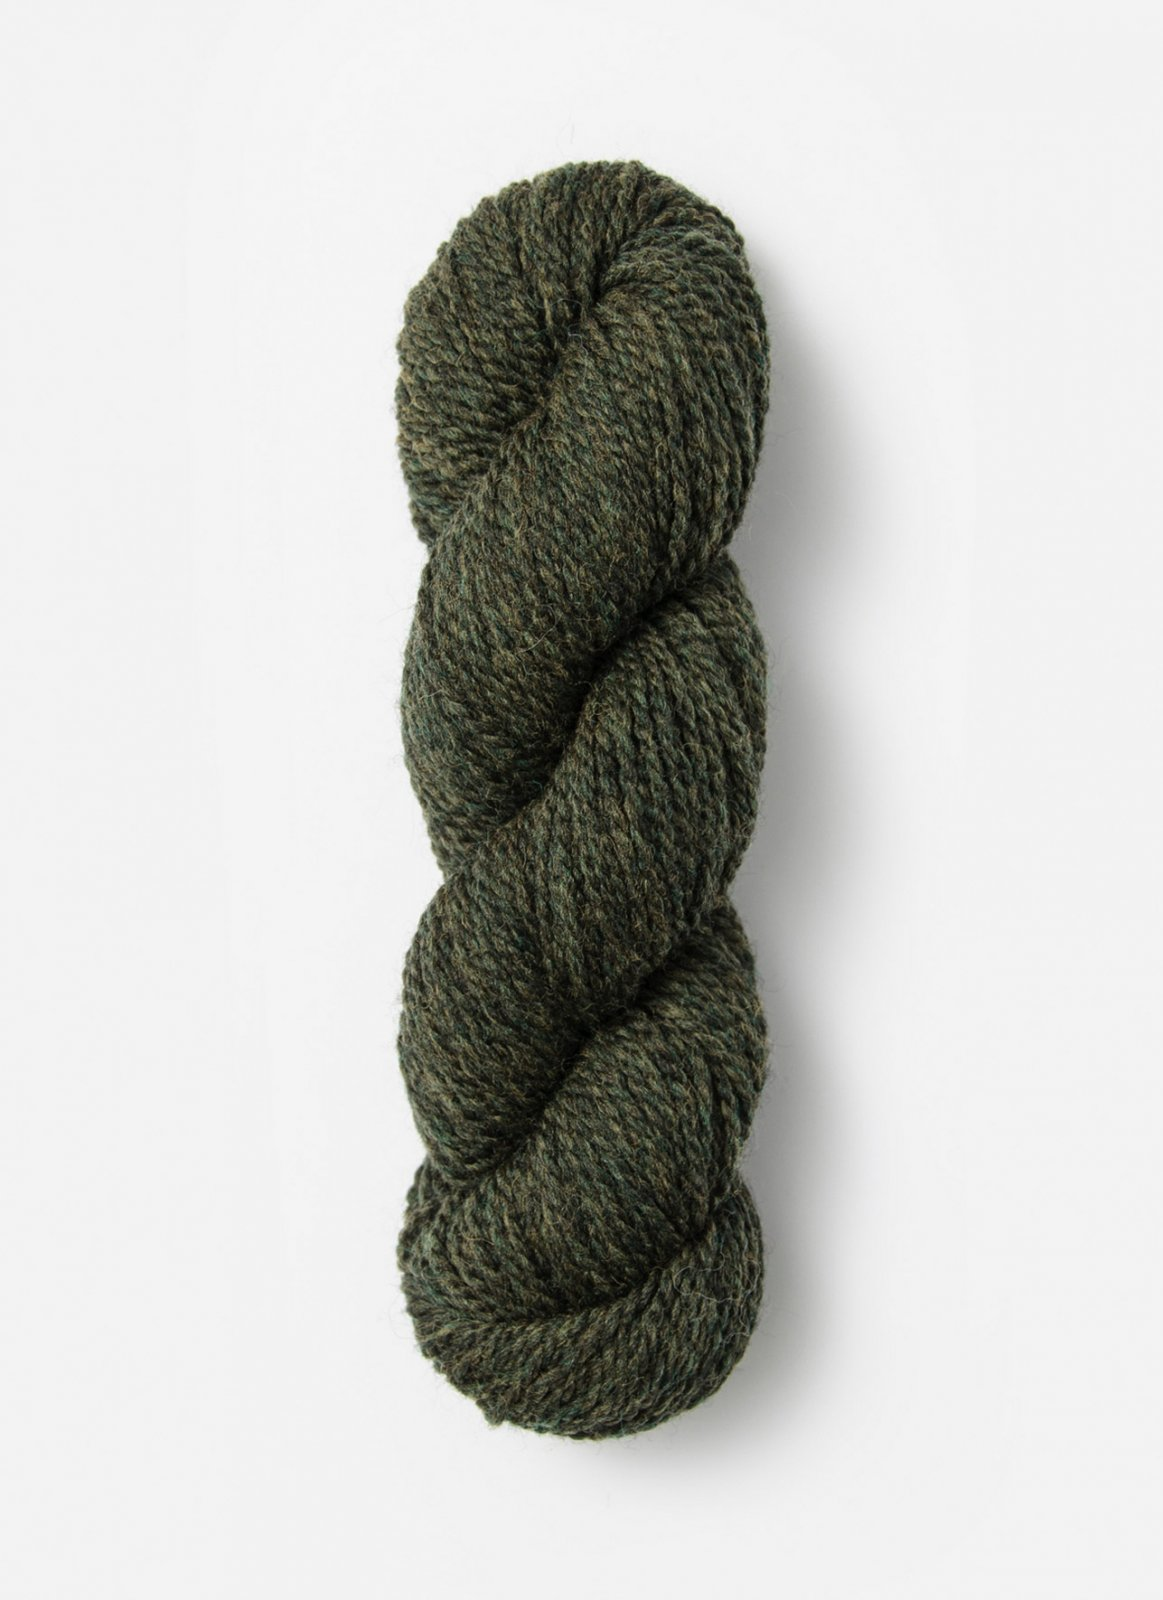 Blue Sky Fibers - Woolstok Worsted - 50g - Assorted Colors